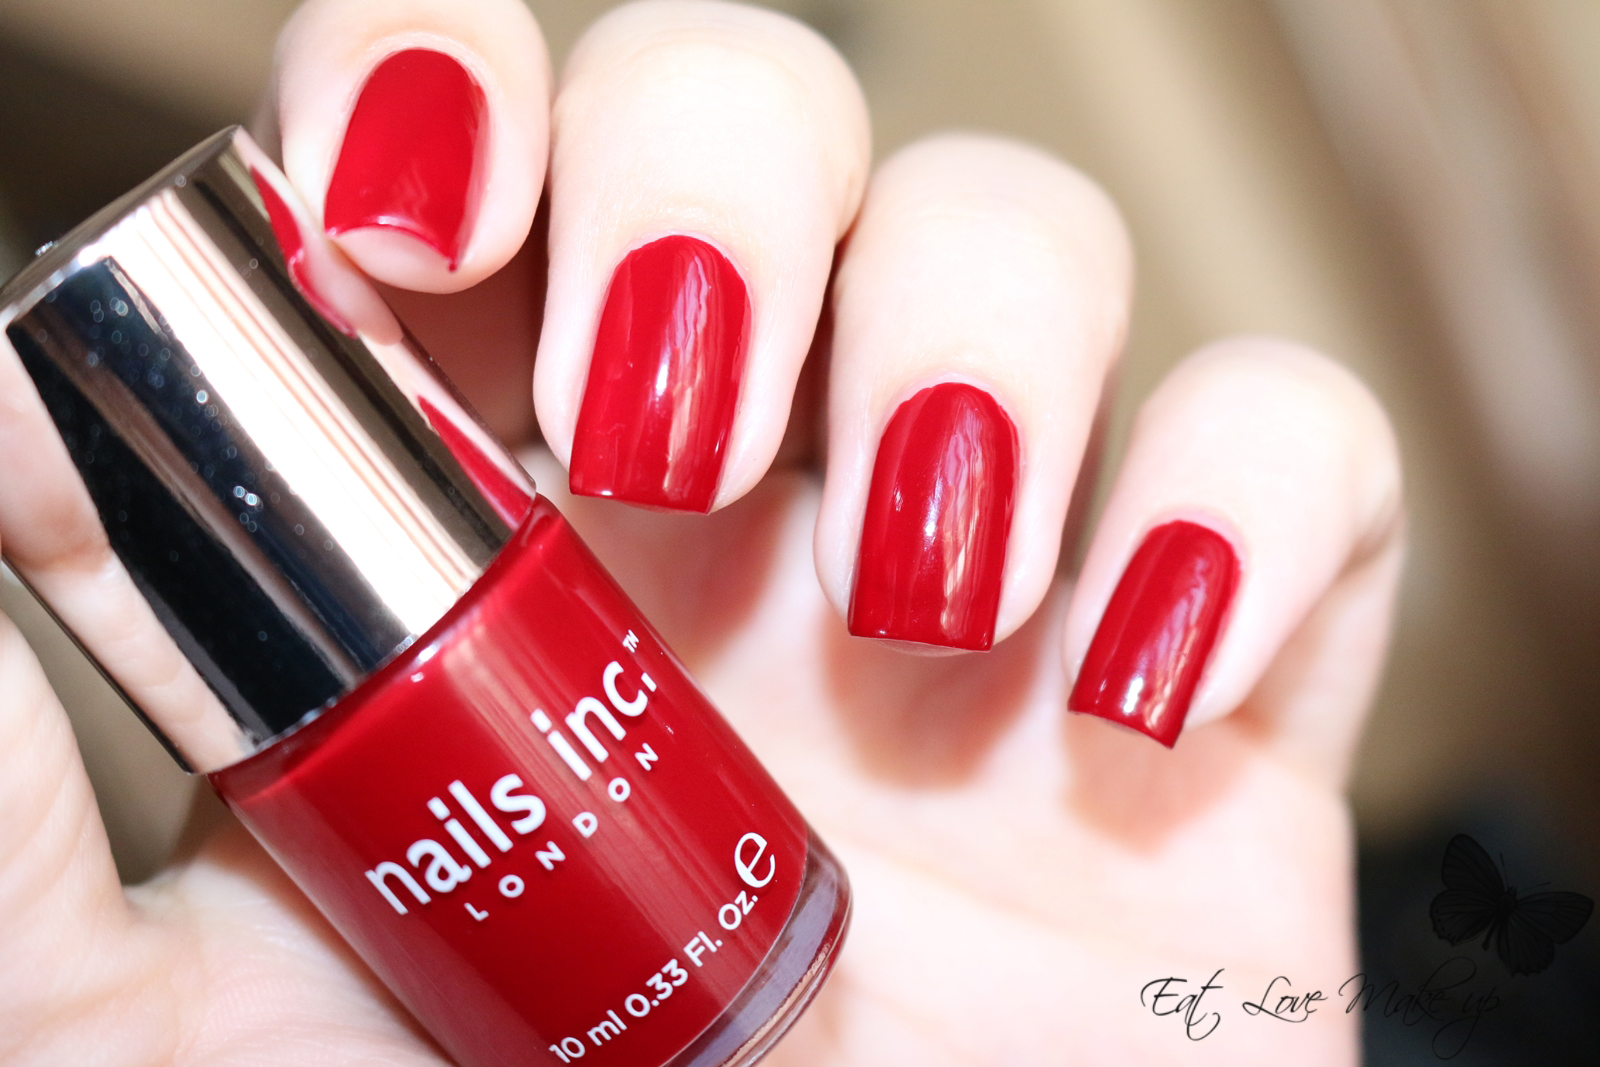 Nails Inc. Tate